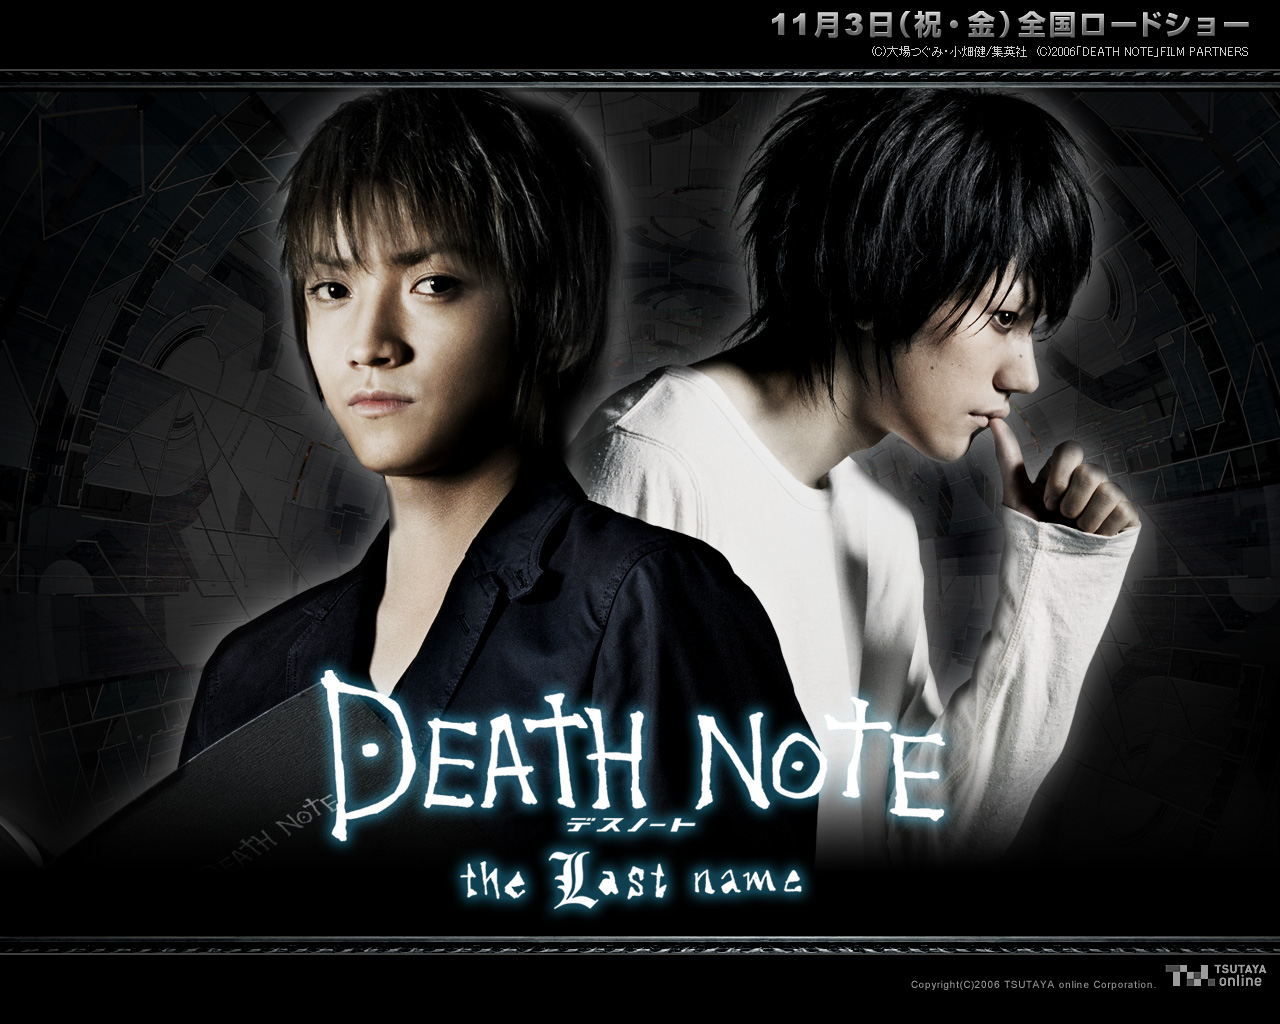 DEATH NOTE: The Last Name, 2006.